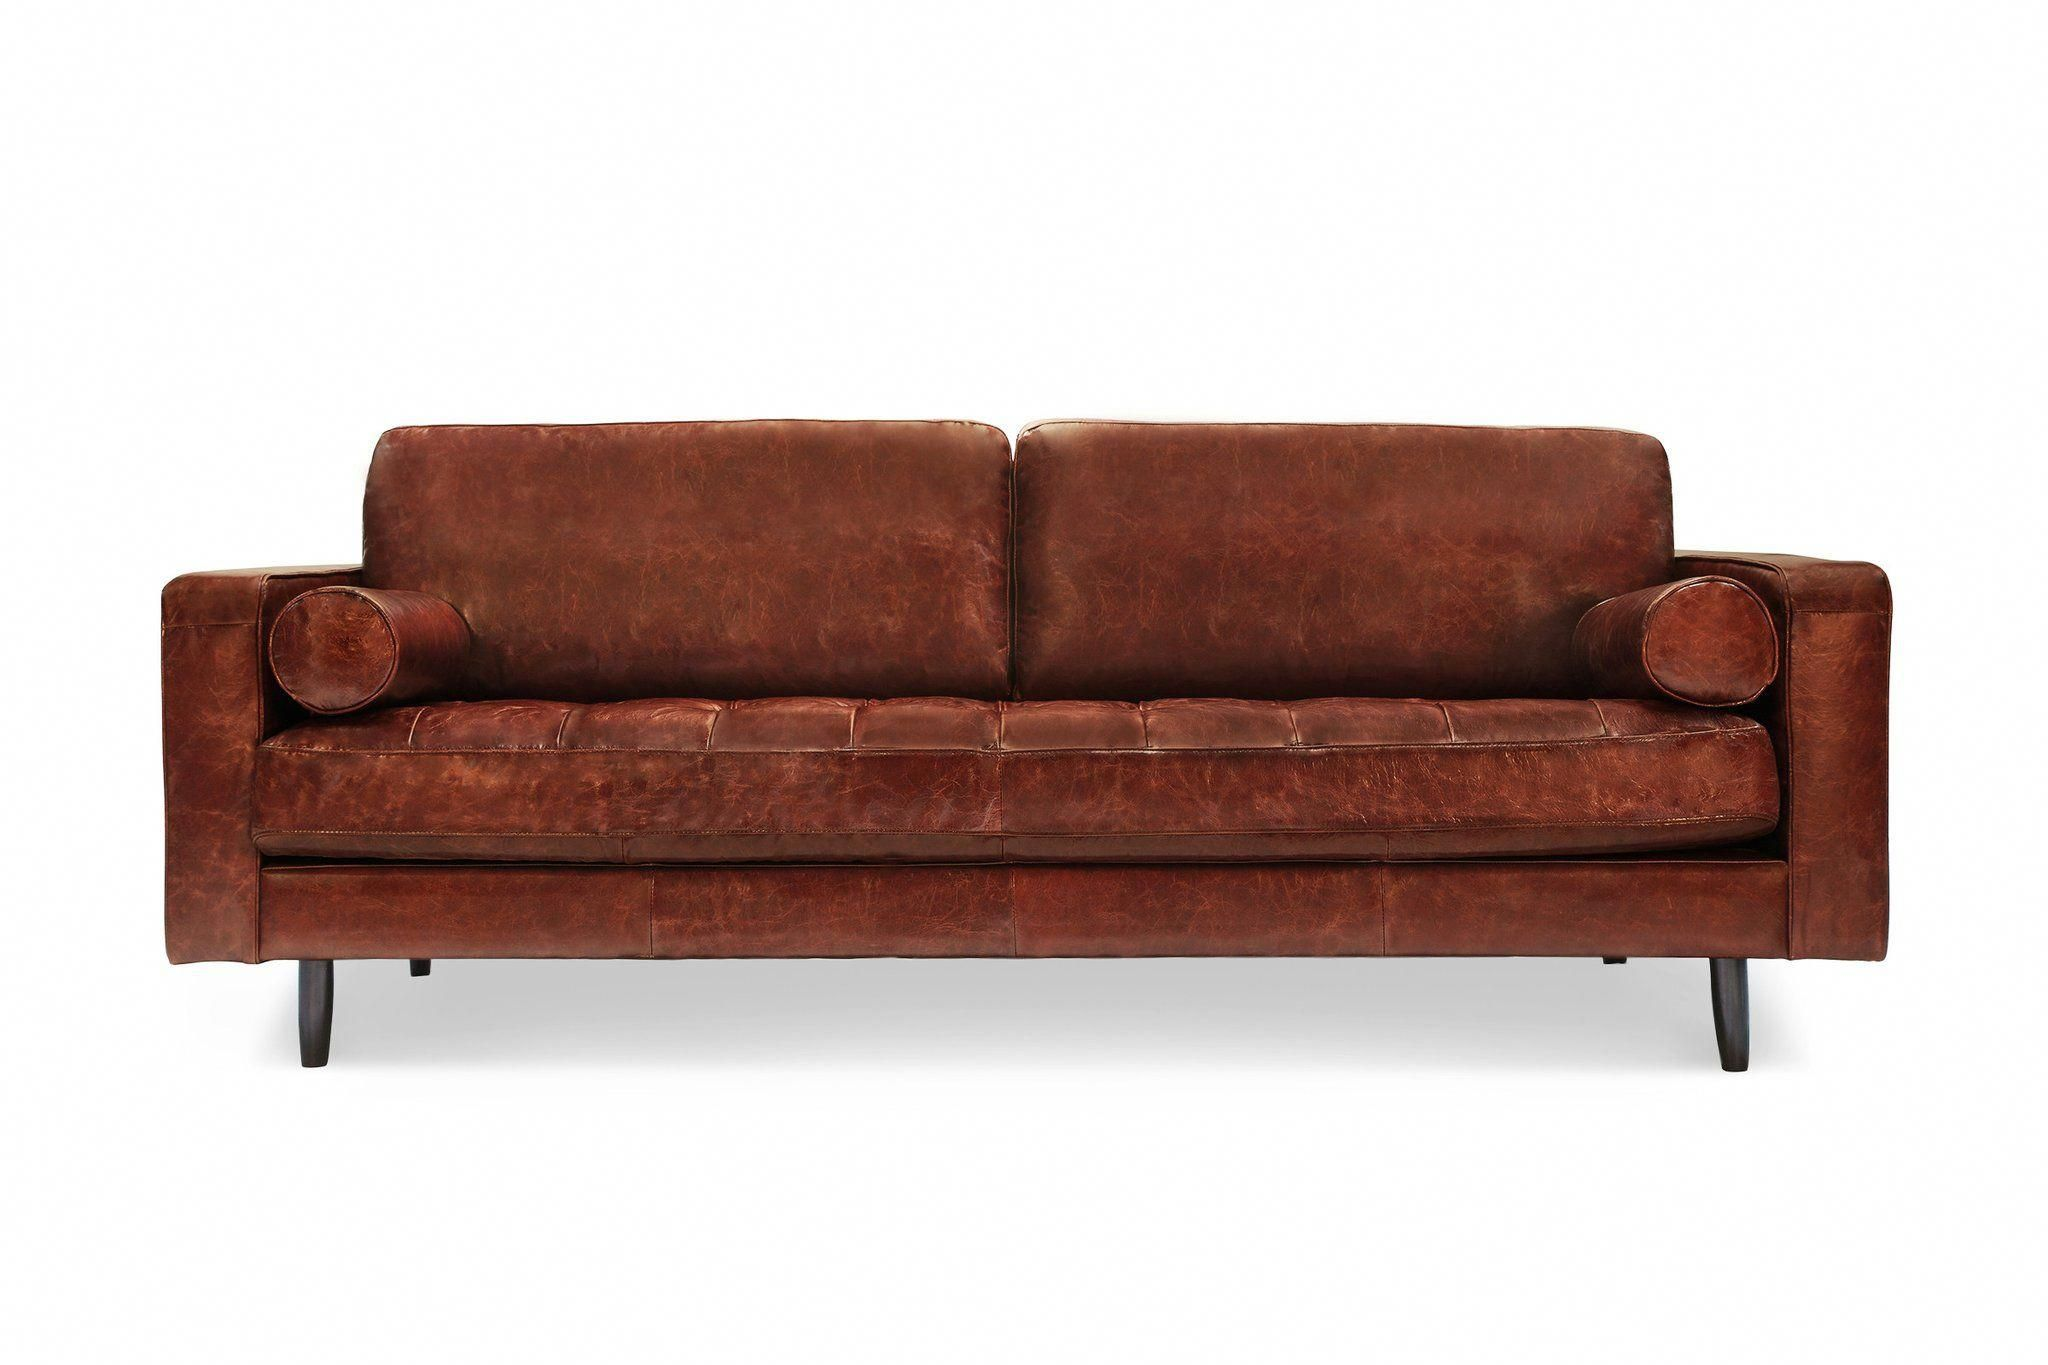 Peachy 109Lthbrn Freeman Sofa In Distressed Brown Leather A Few Short Links Chair Design For Home Short Linksinfo